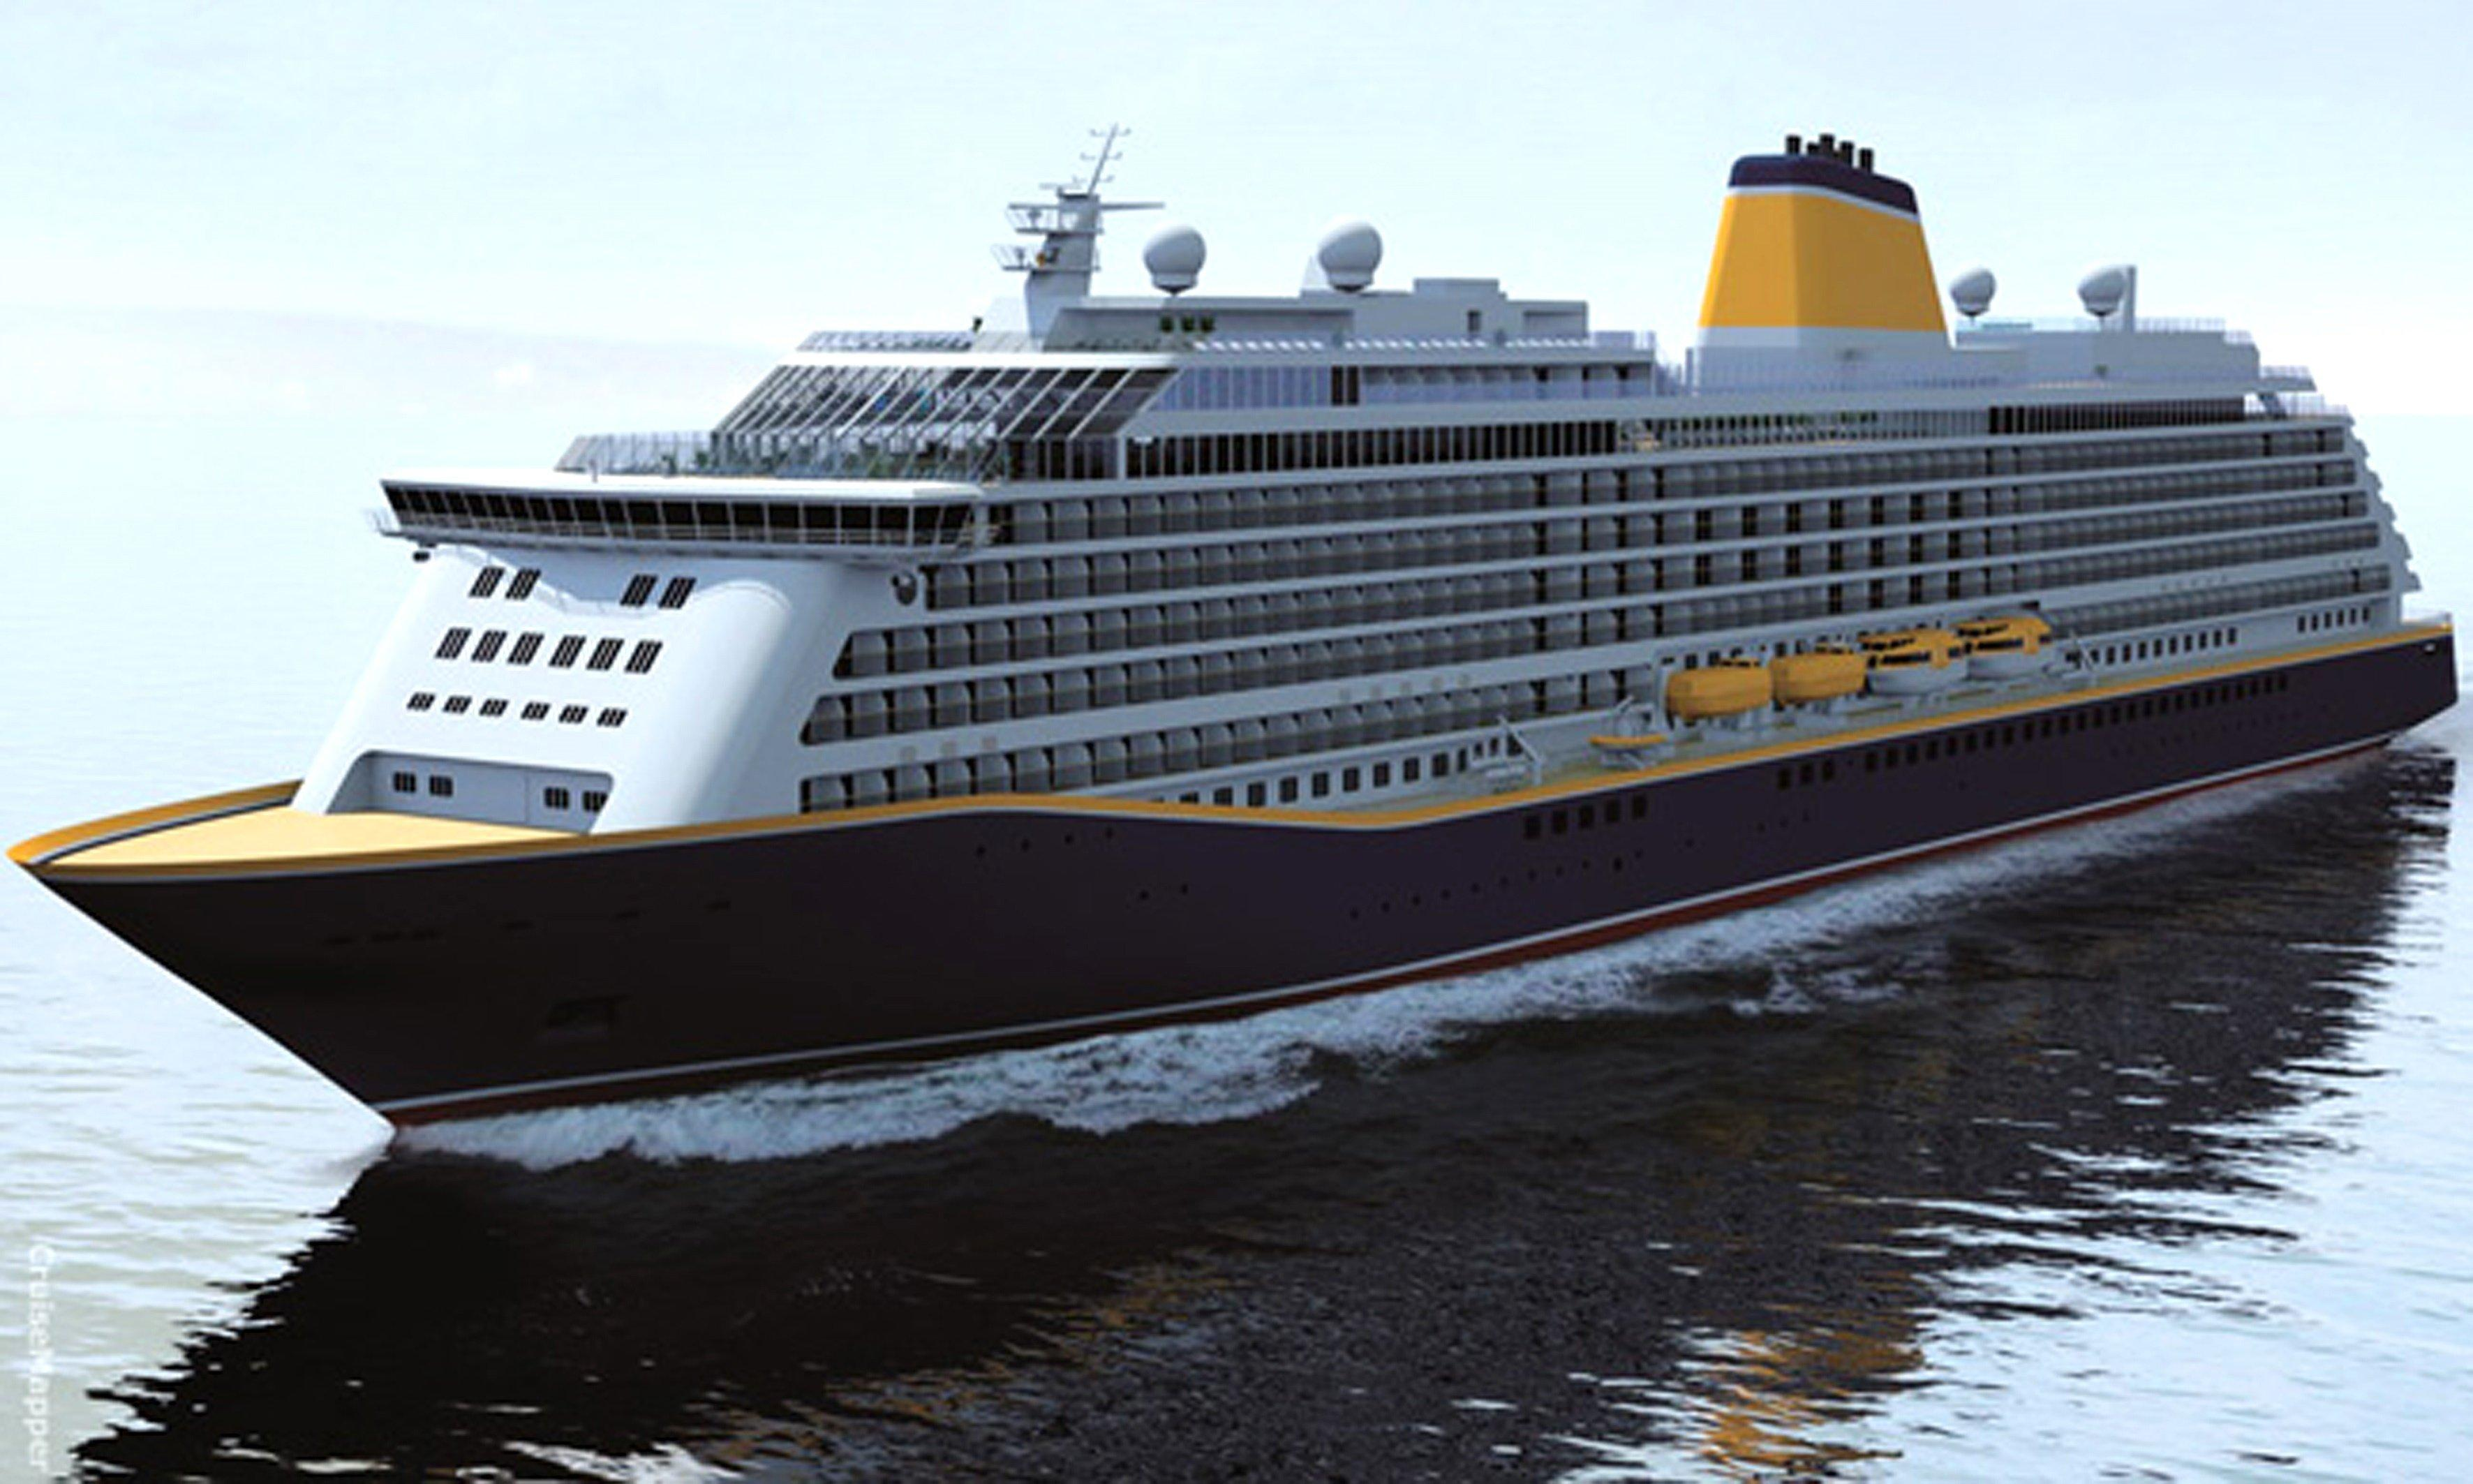 Rendering of Saga Cruises Spirit of Adventure